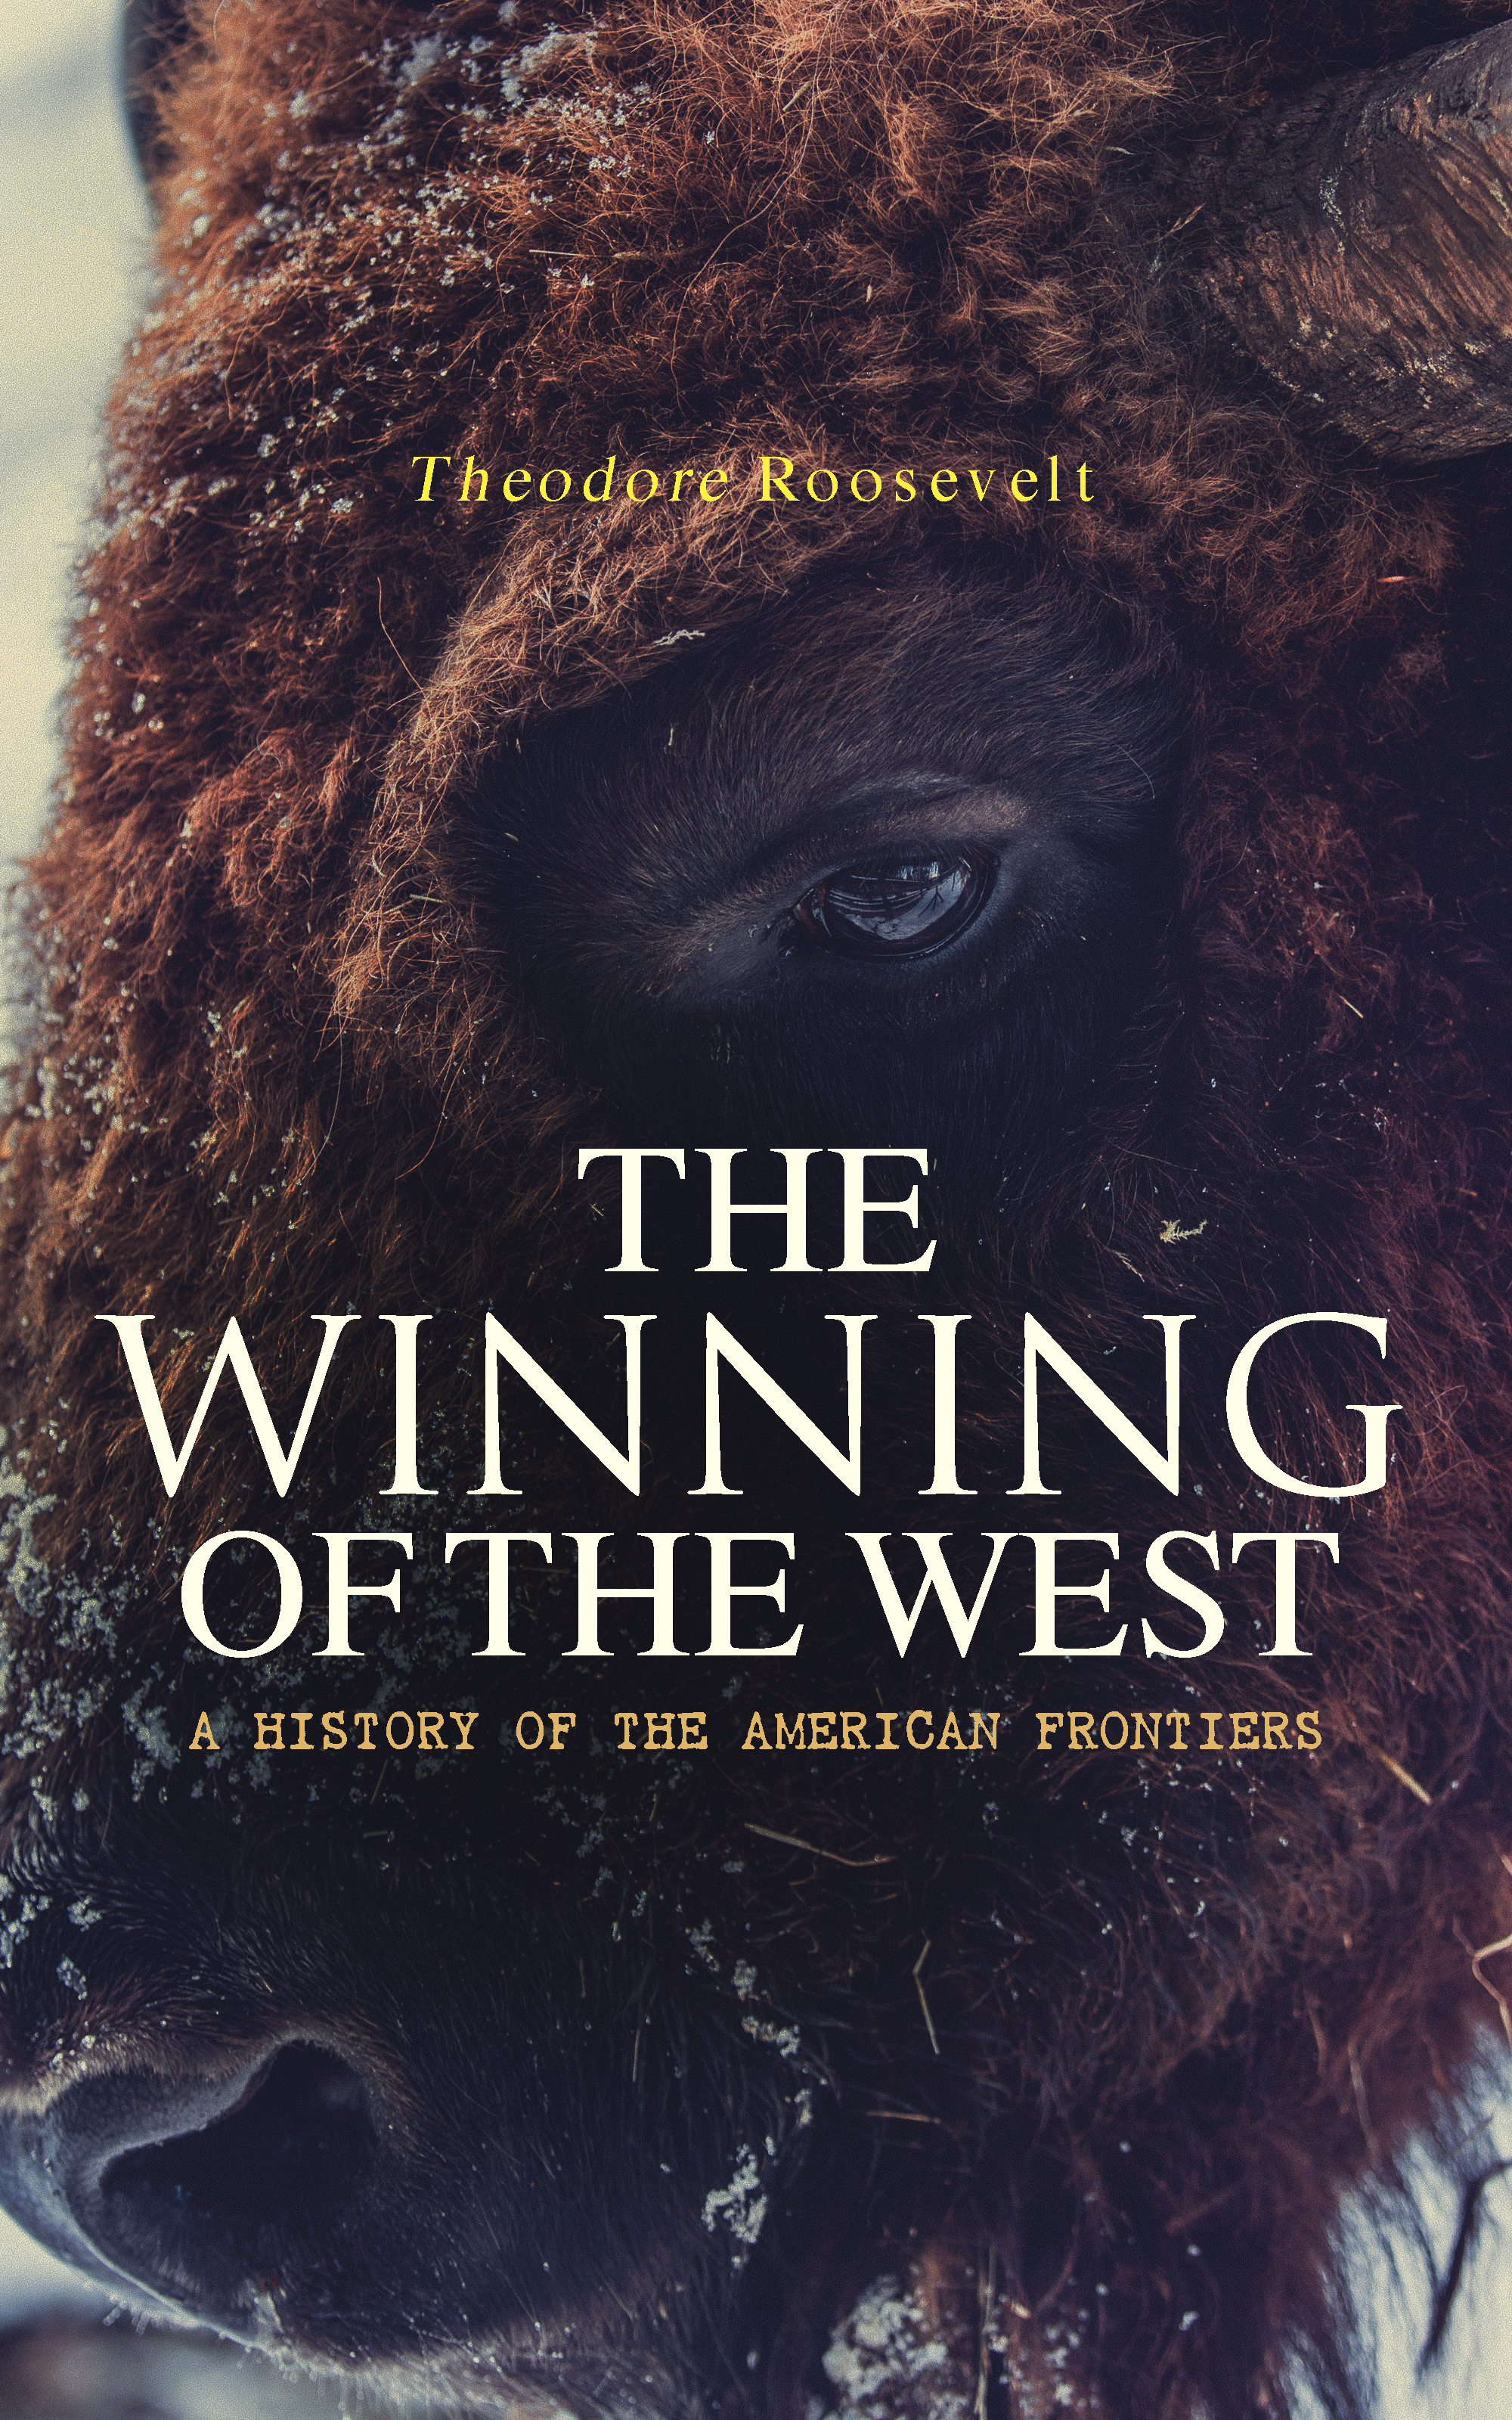 Theodore Roosevelt The Winning of the West: A History of the American Frontiers katherine langrish west of the moon